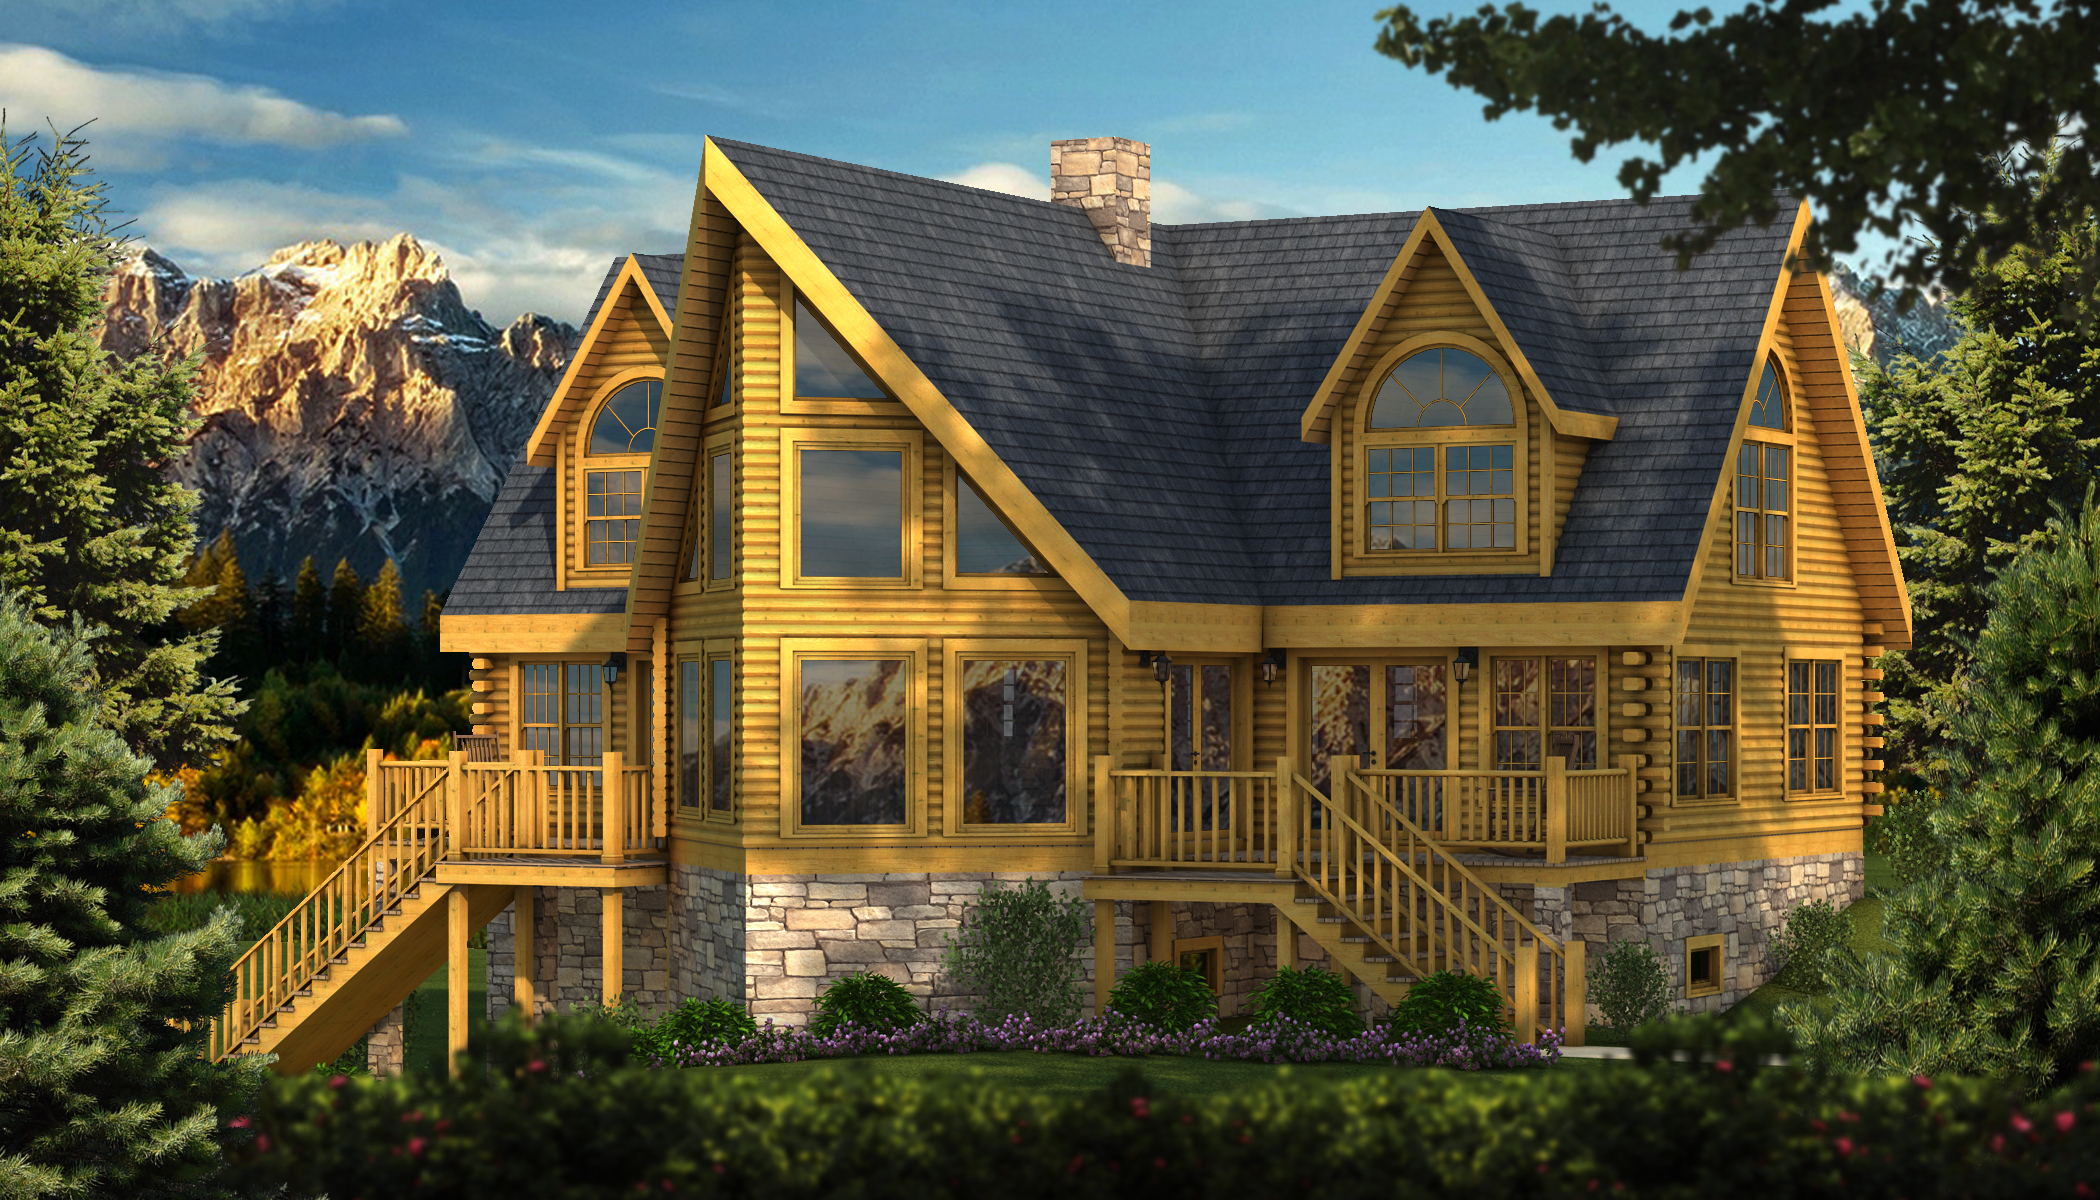 Adirondack Home Plans adirondack - plans & information | southland log homes